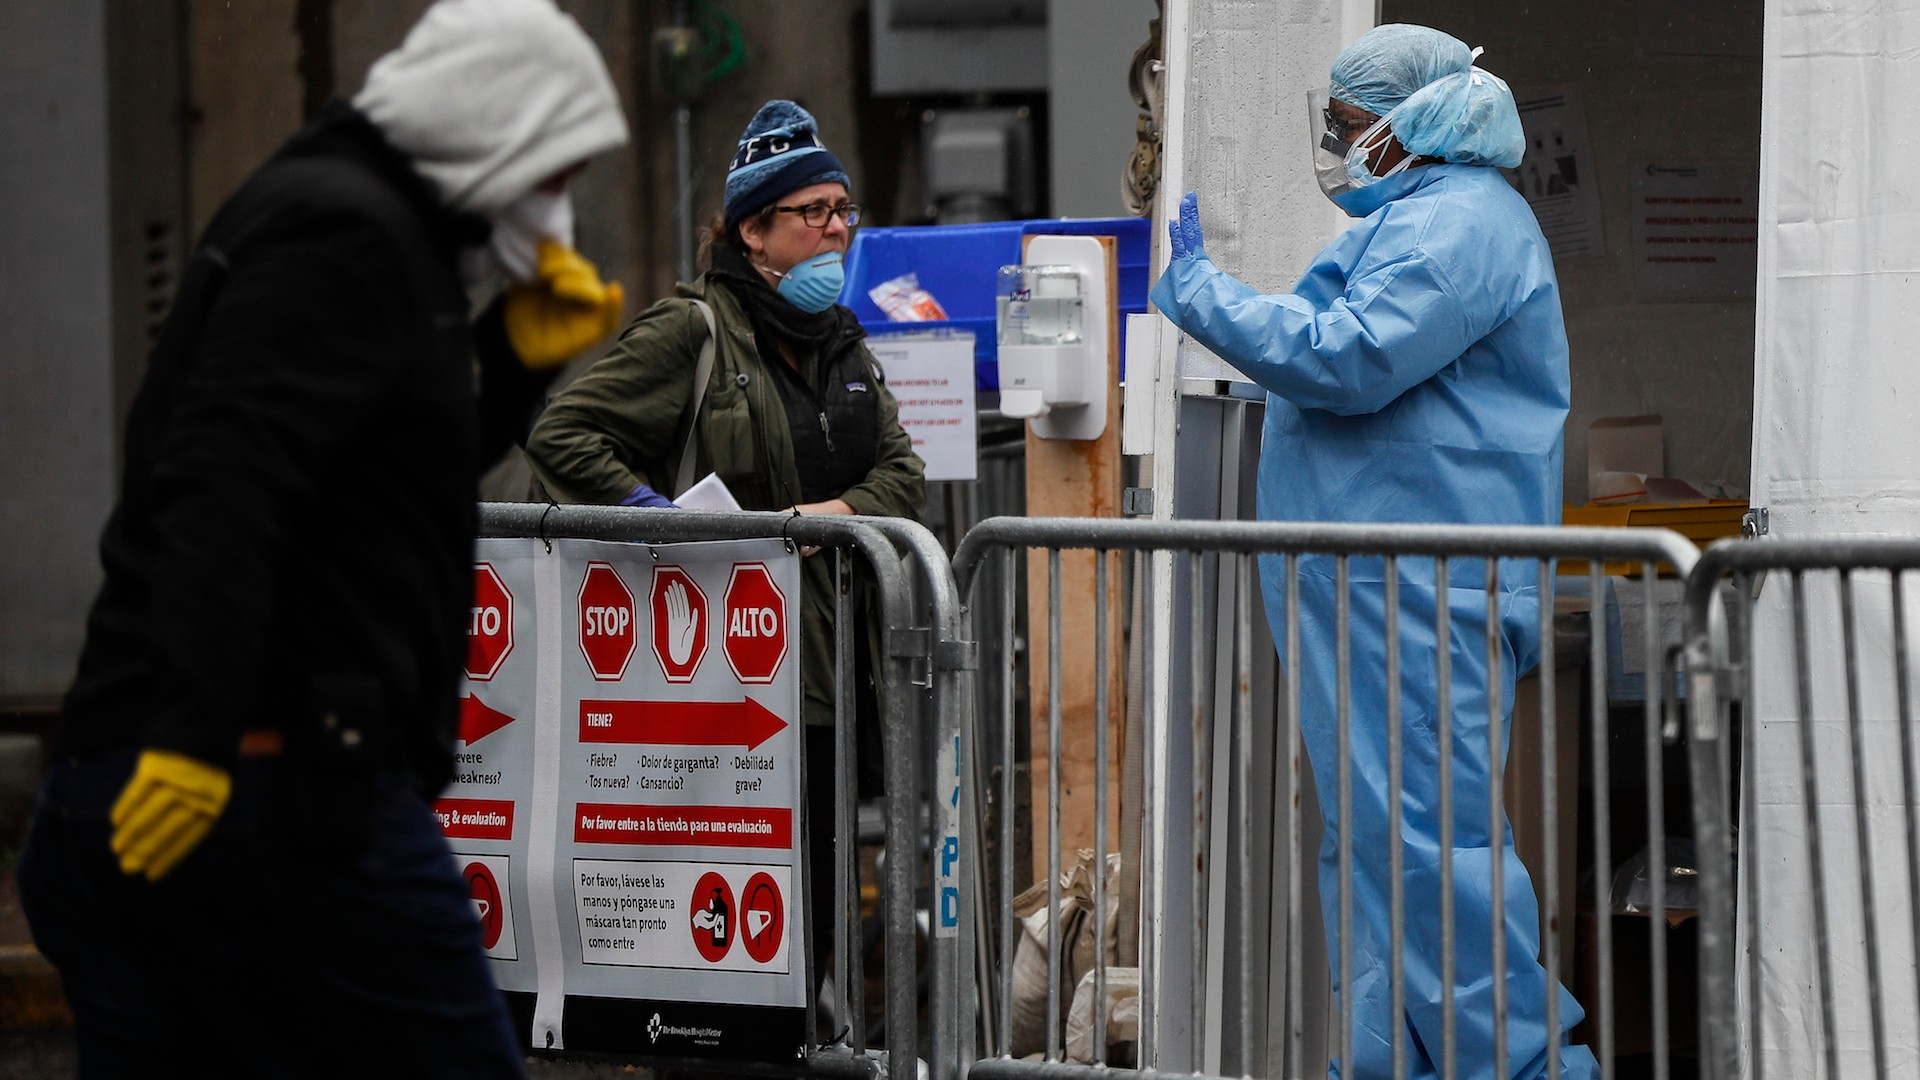 , Cuomo Is Asking New York Hospitals to Increase Beds by 50% to Handle a Coronavirus Surge, Saubio Making Wealth